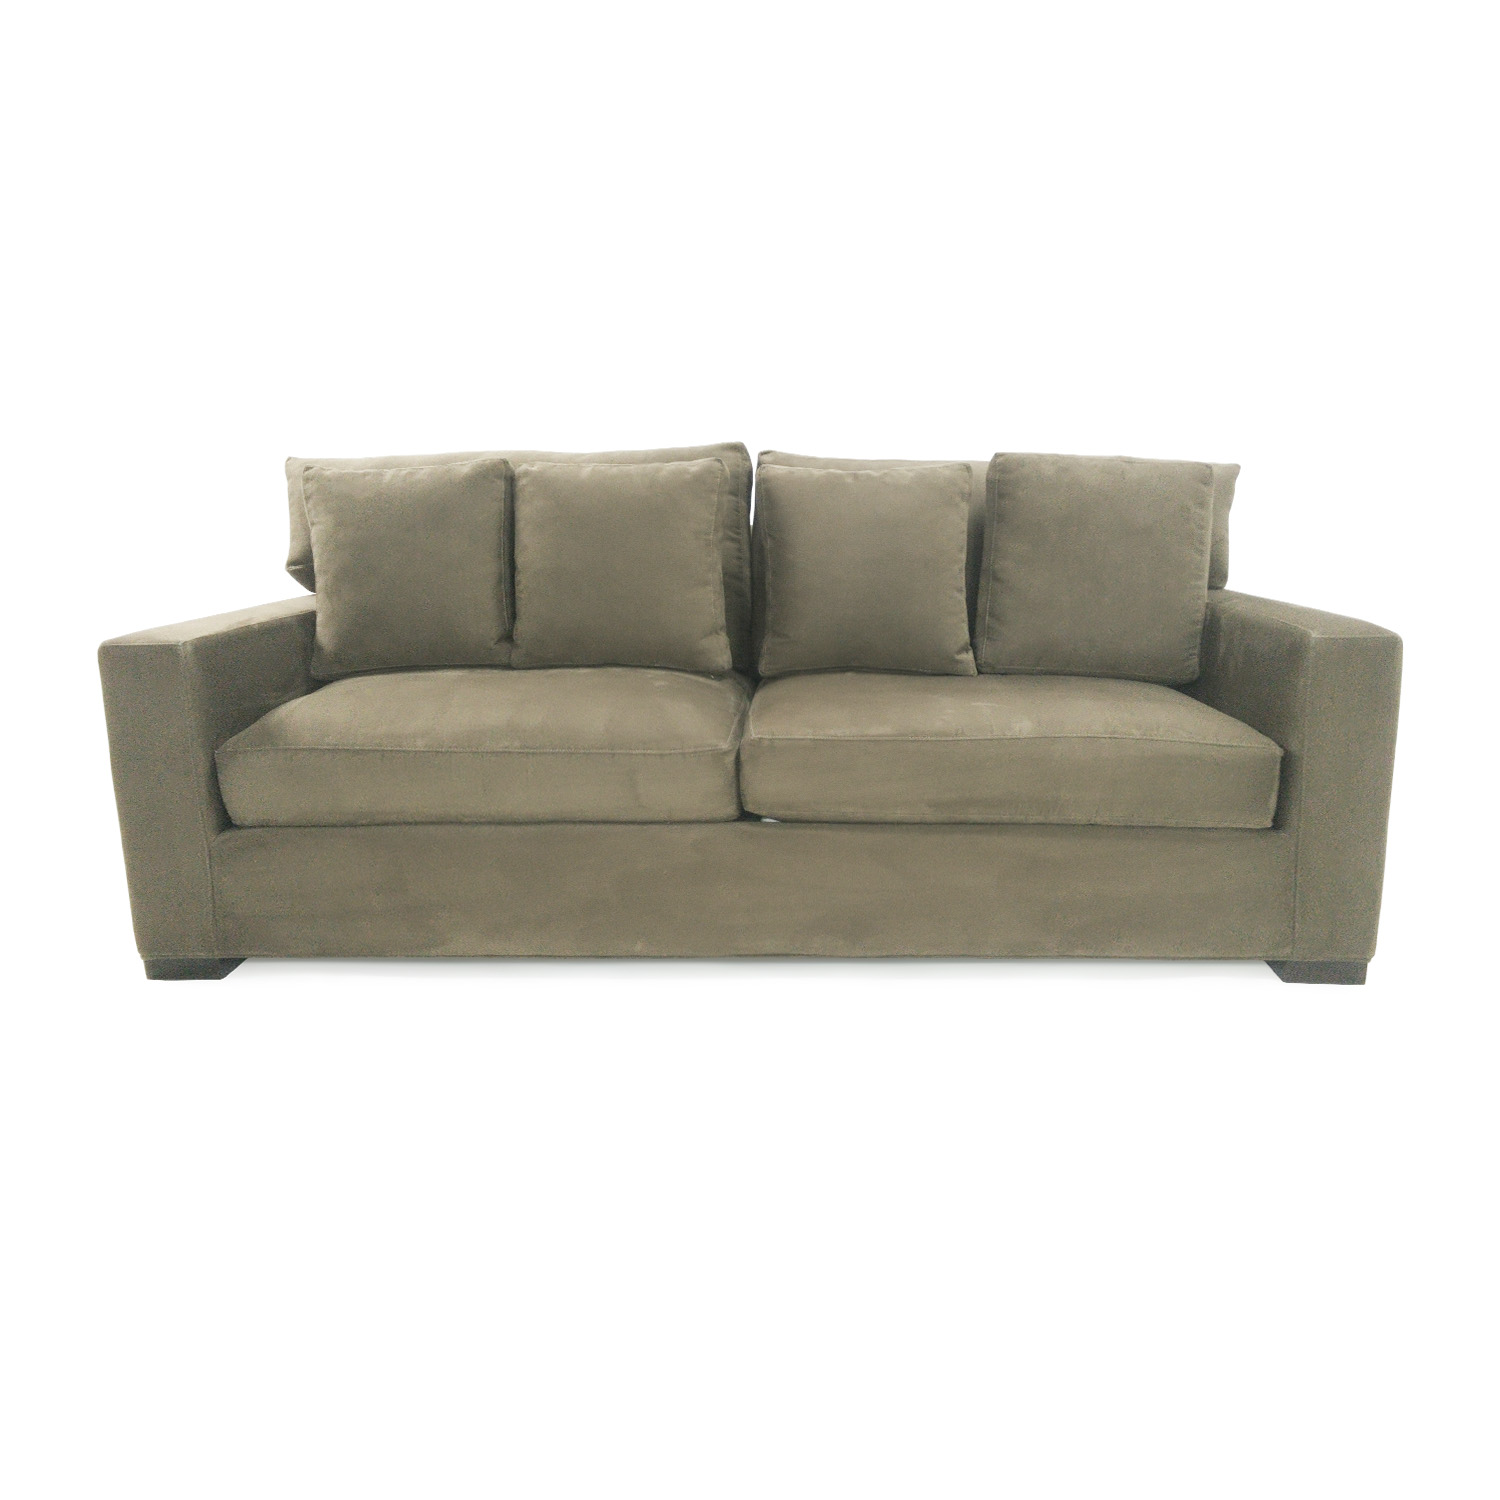 72% OFF - Crate & Barrel Crate & Barrel Axis II Seat Sofa / Sofas